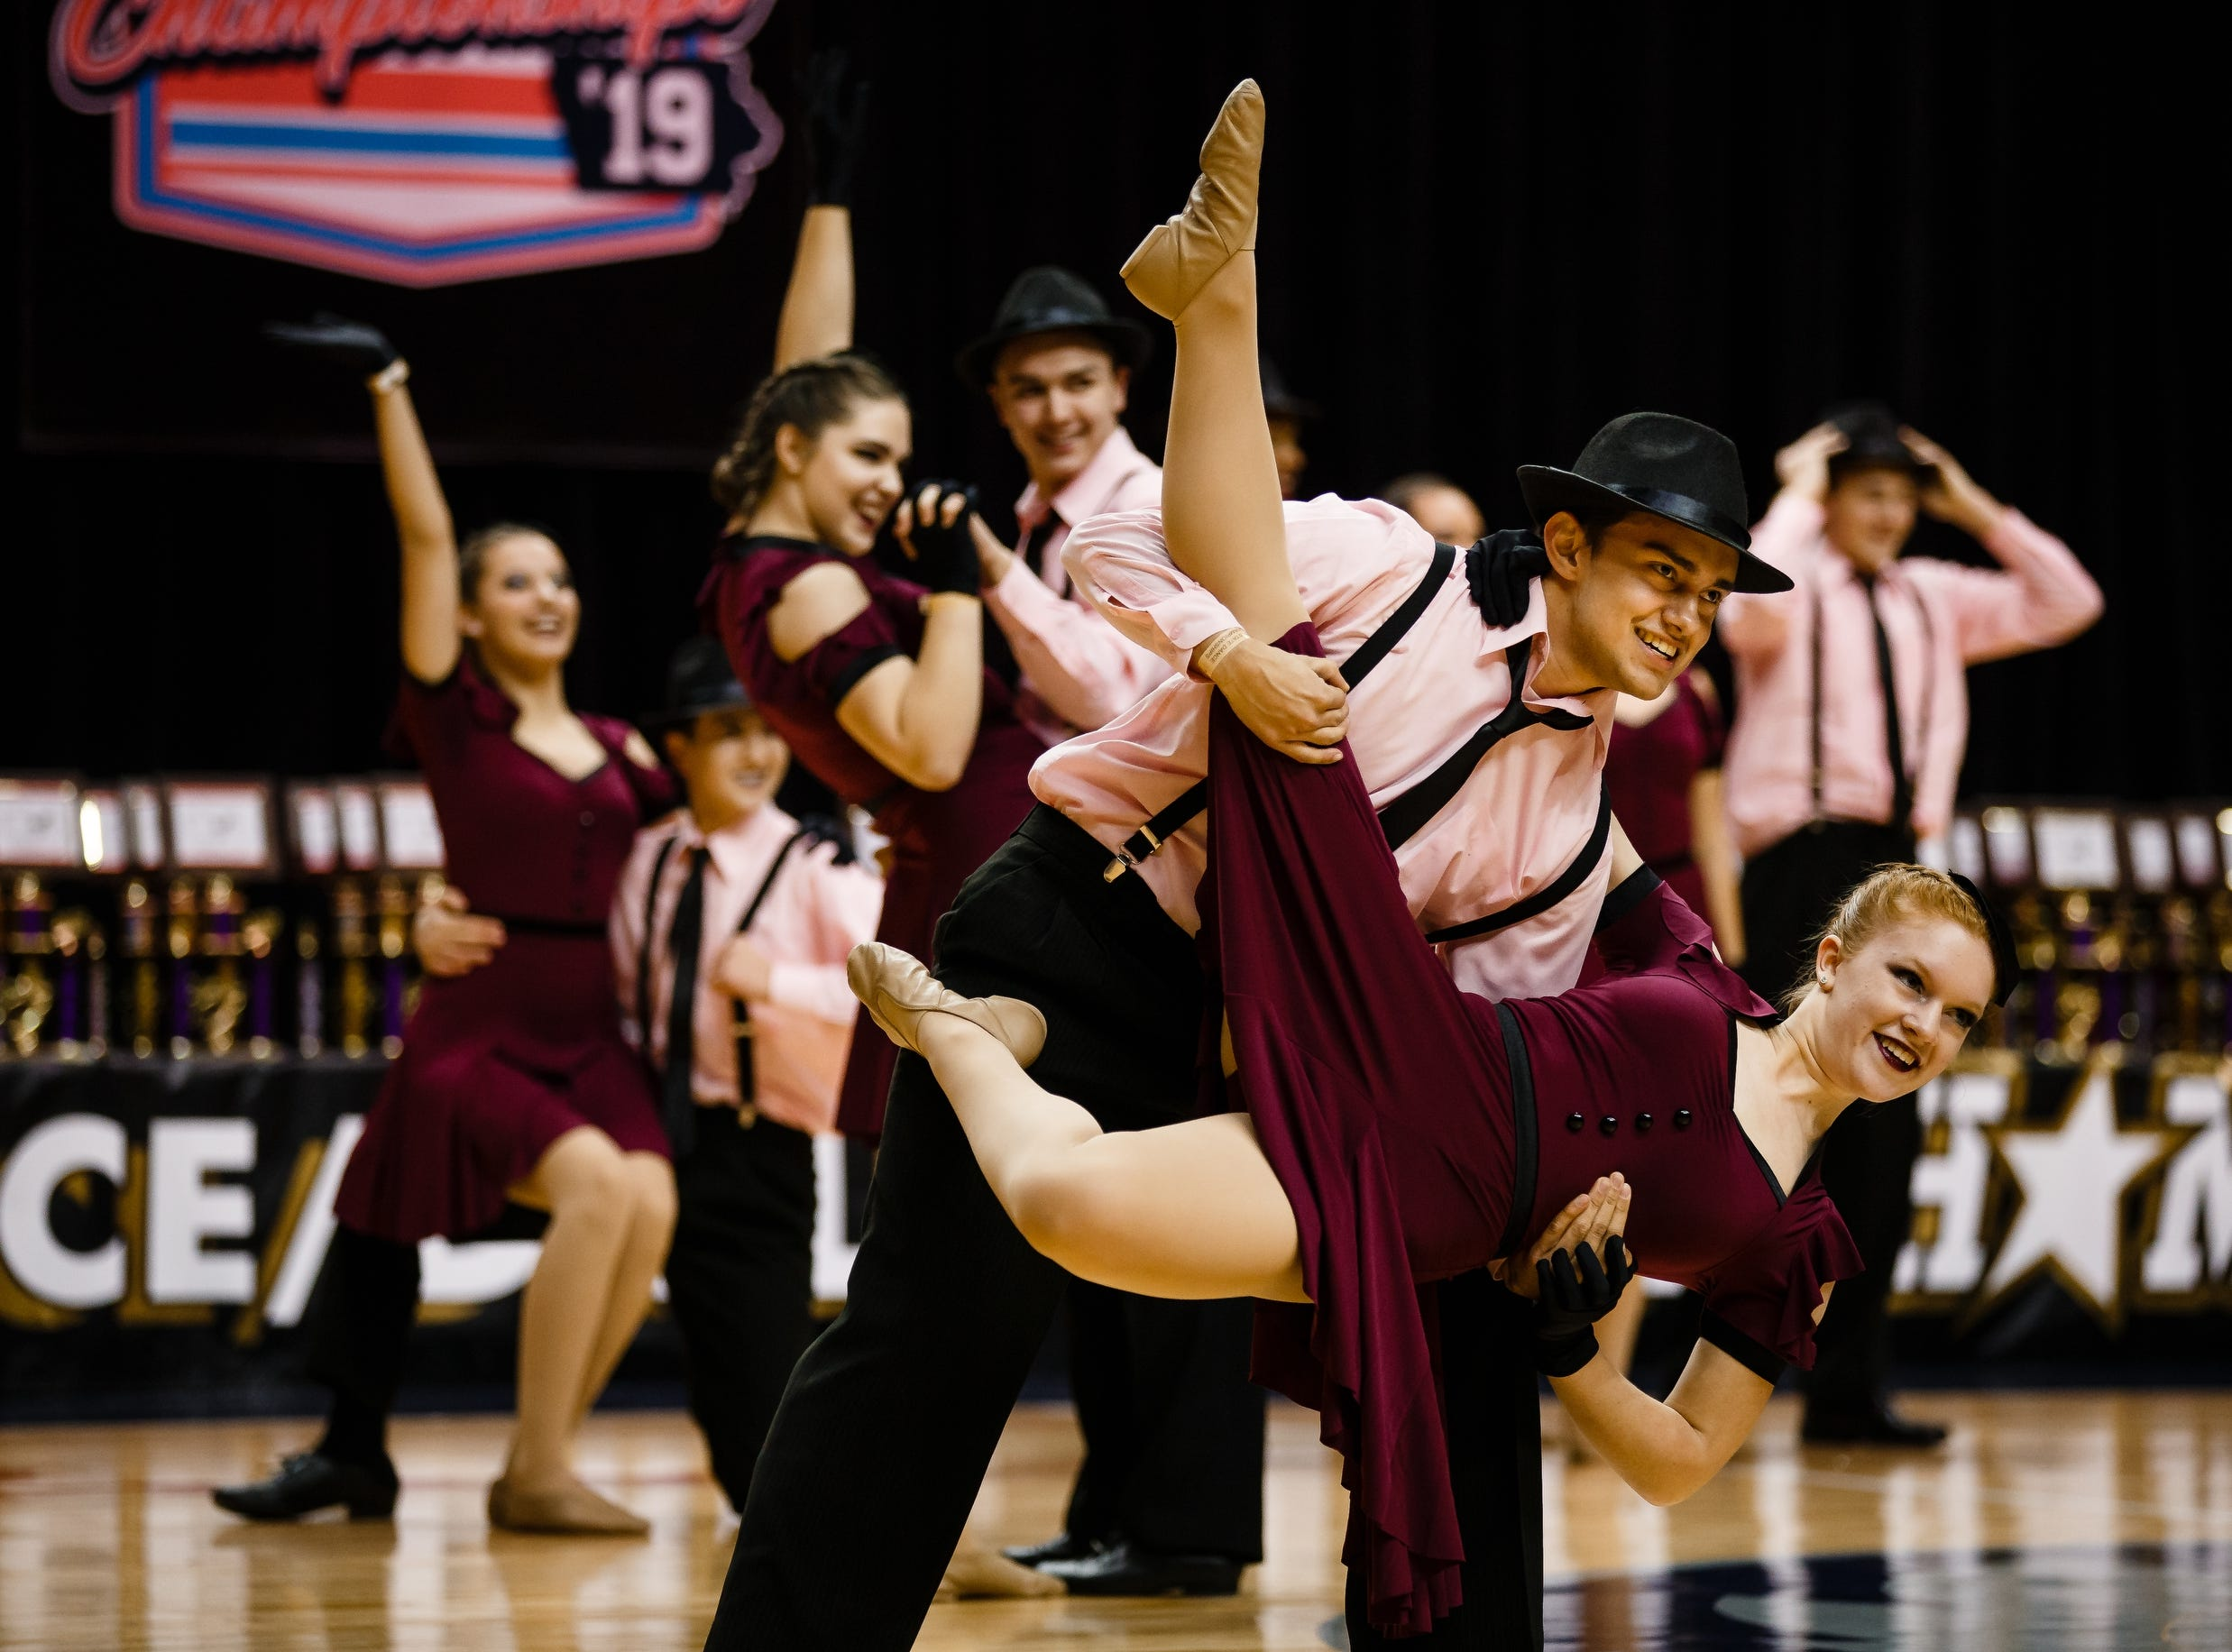 Davenport Central dancers perform during the Iowa Dance State Championships at Wells Fargo Arena on Friday, Nov. 30, 2018, in Des Moines.